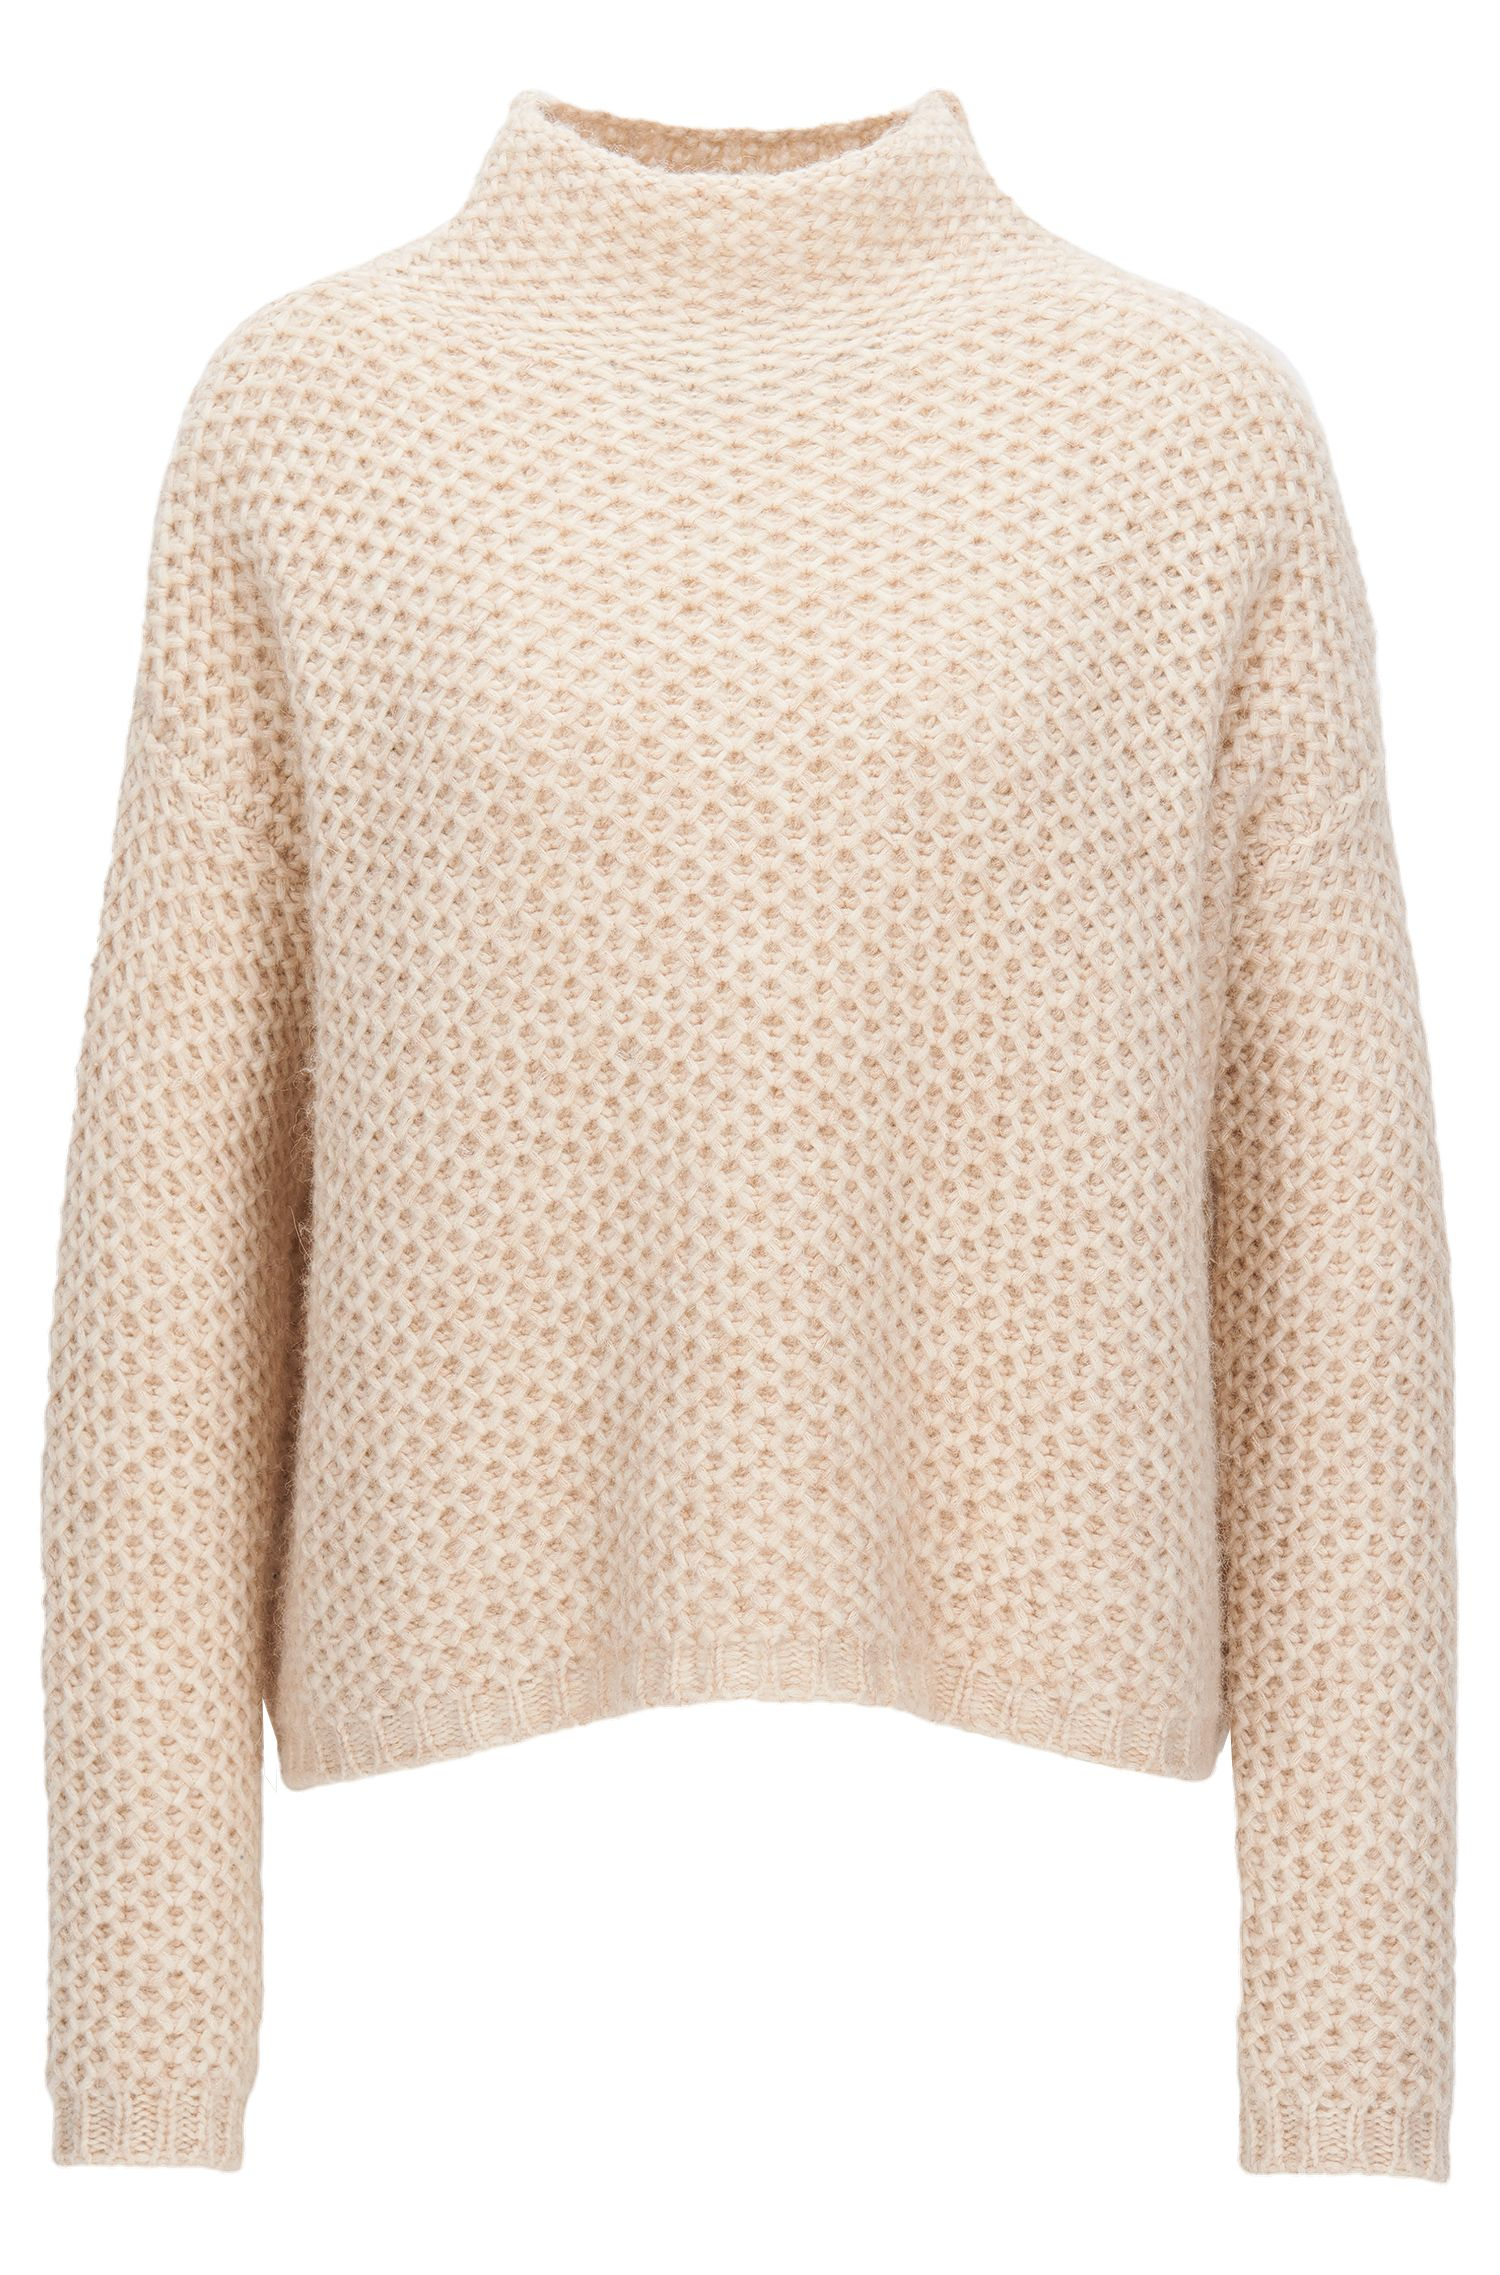 Funnel-neck sweater in a structured knit